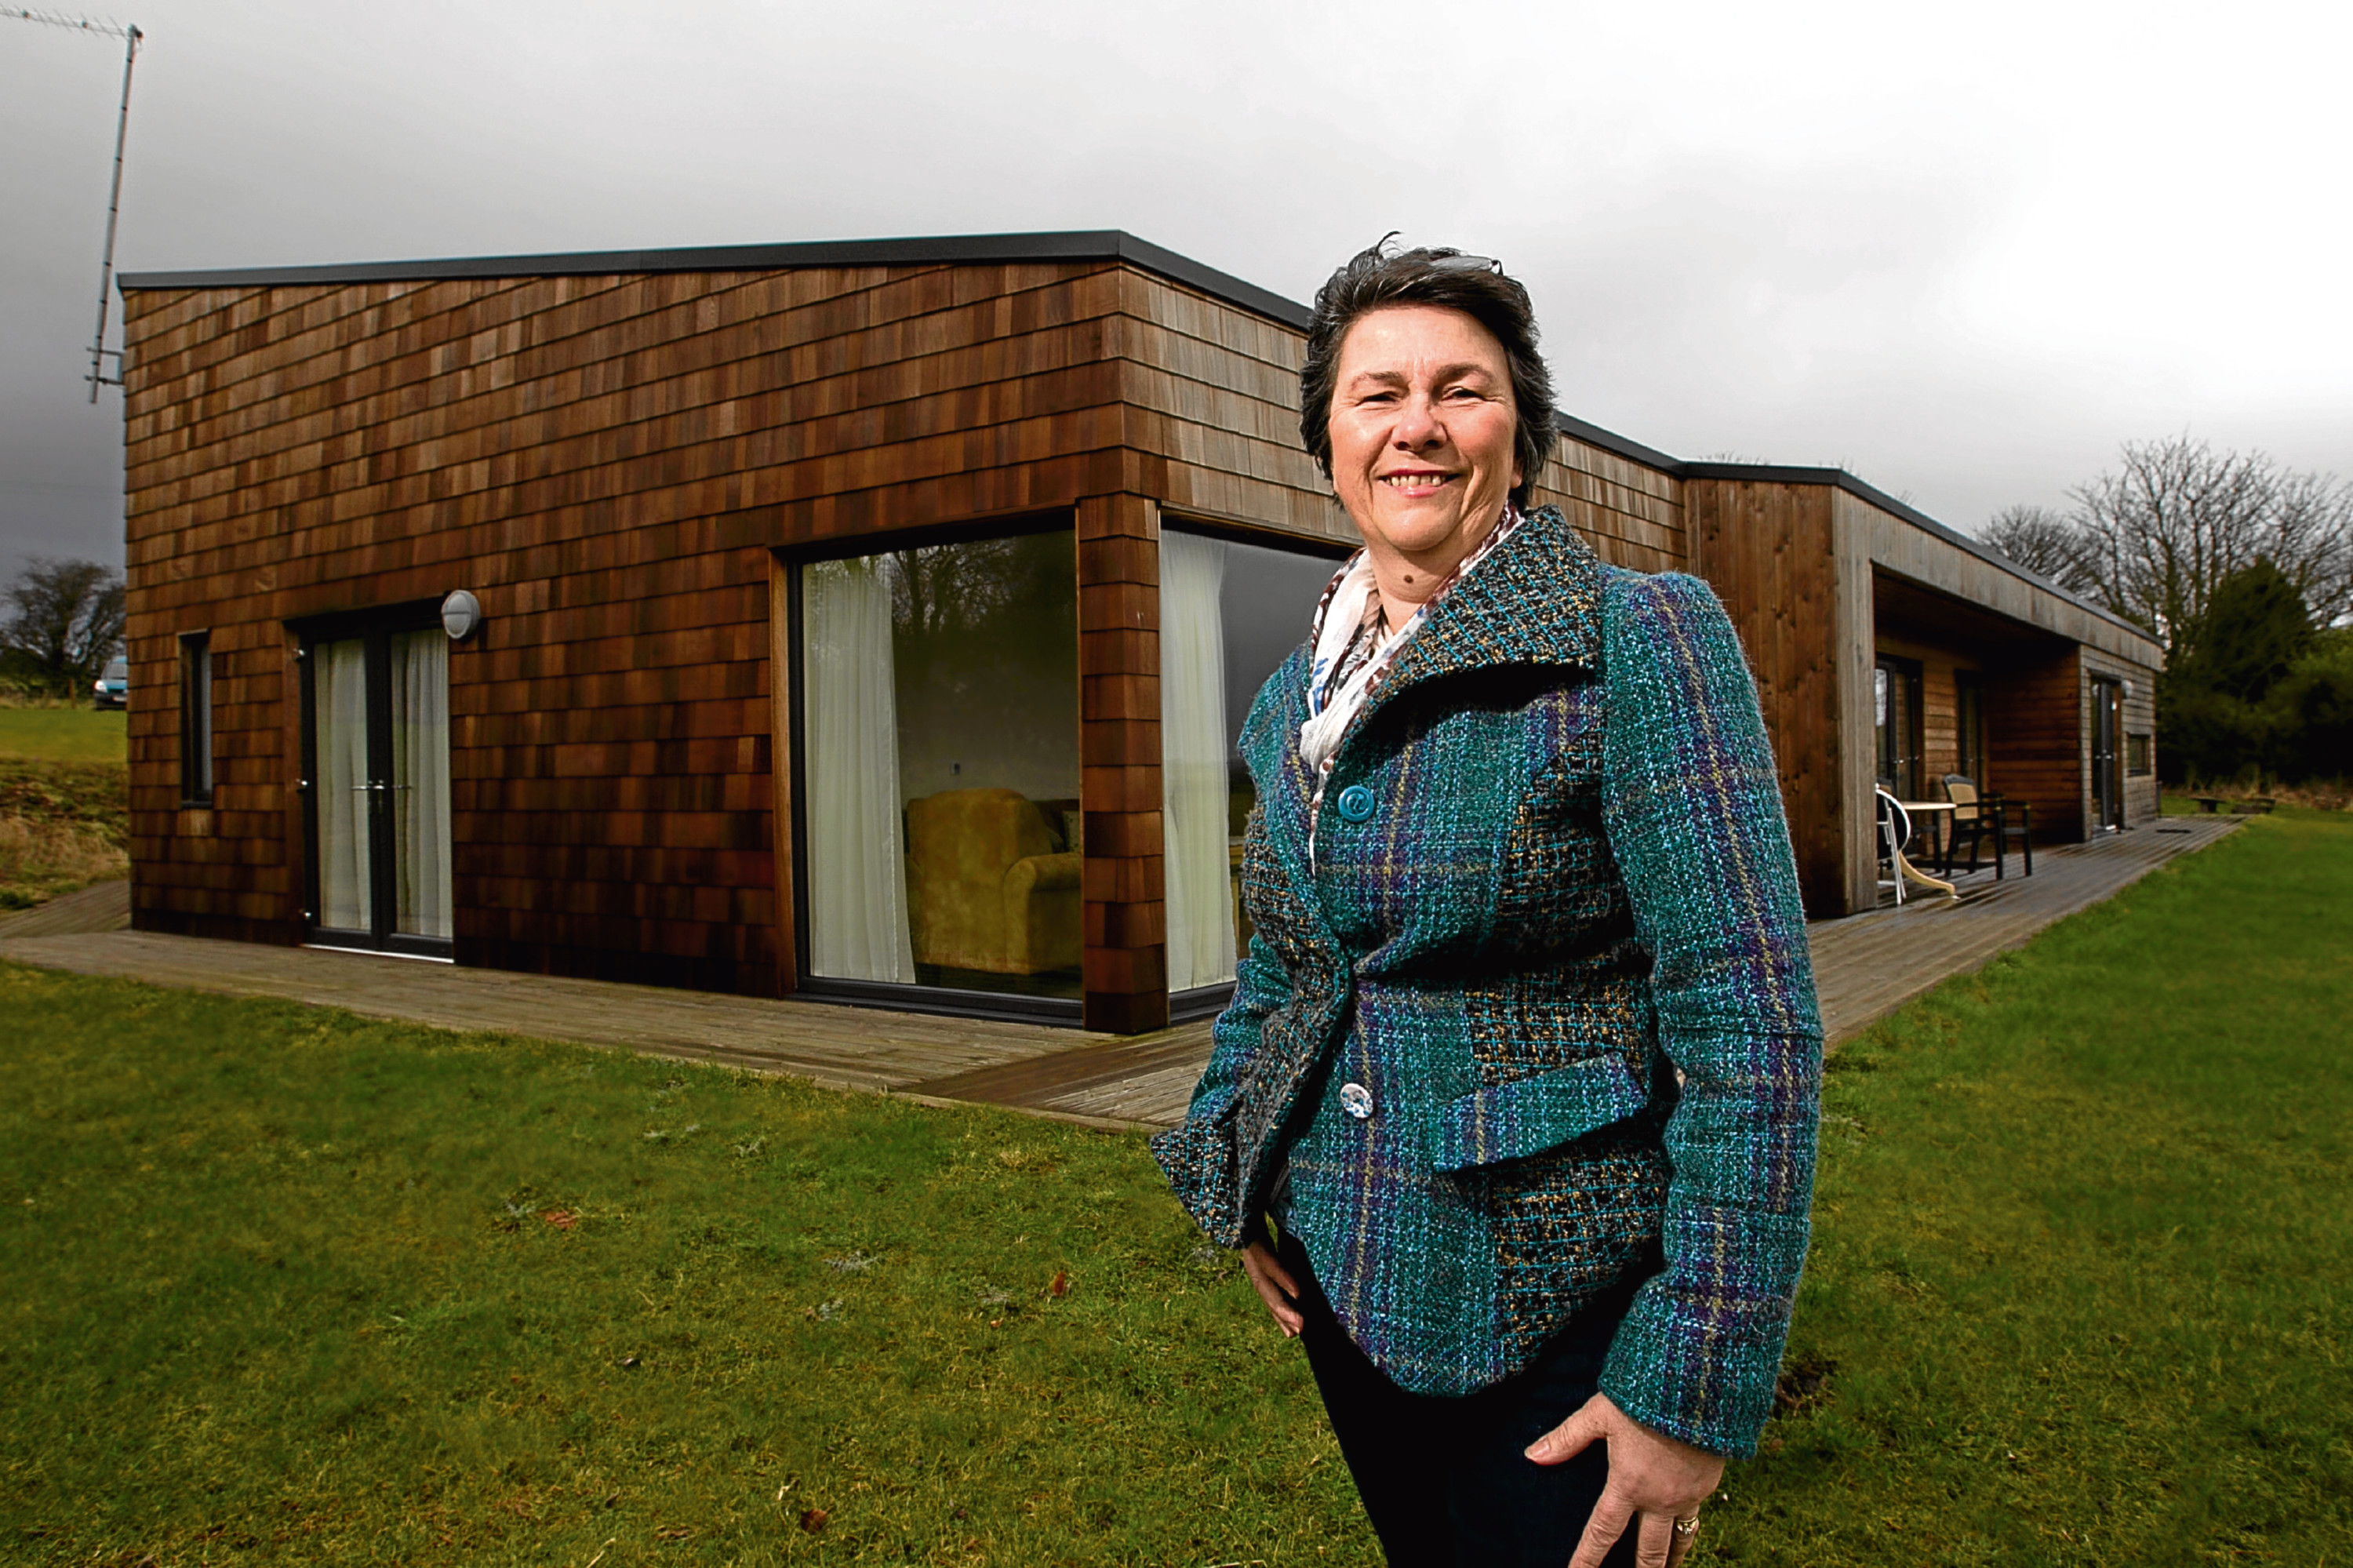 Moira Henderson, who has built a holiday home, which is aimed at making tourism more accessible to people with disabilities. (Andrew Cawley)